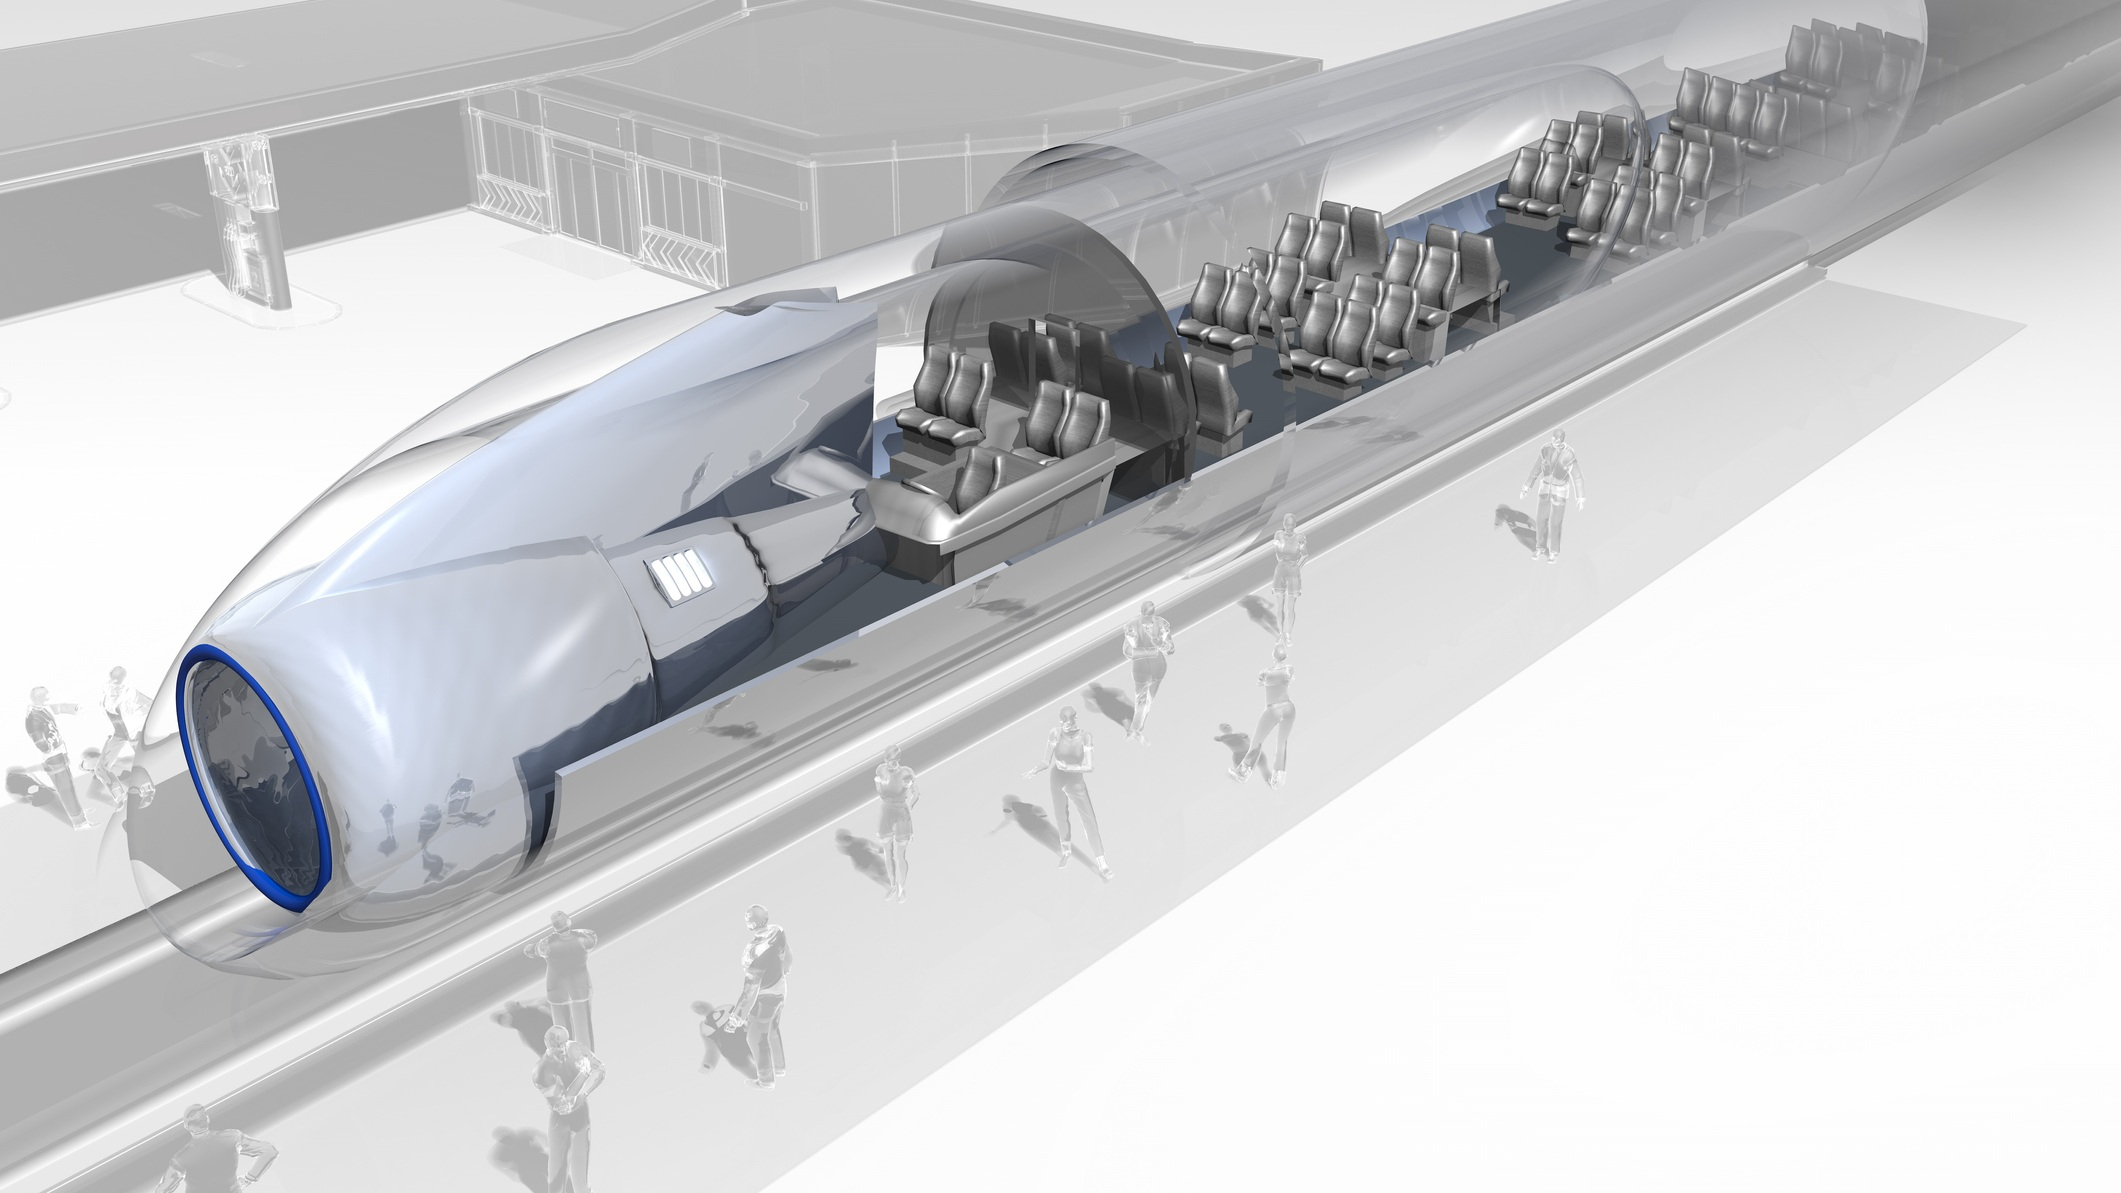 Hyperloop example